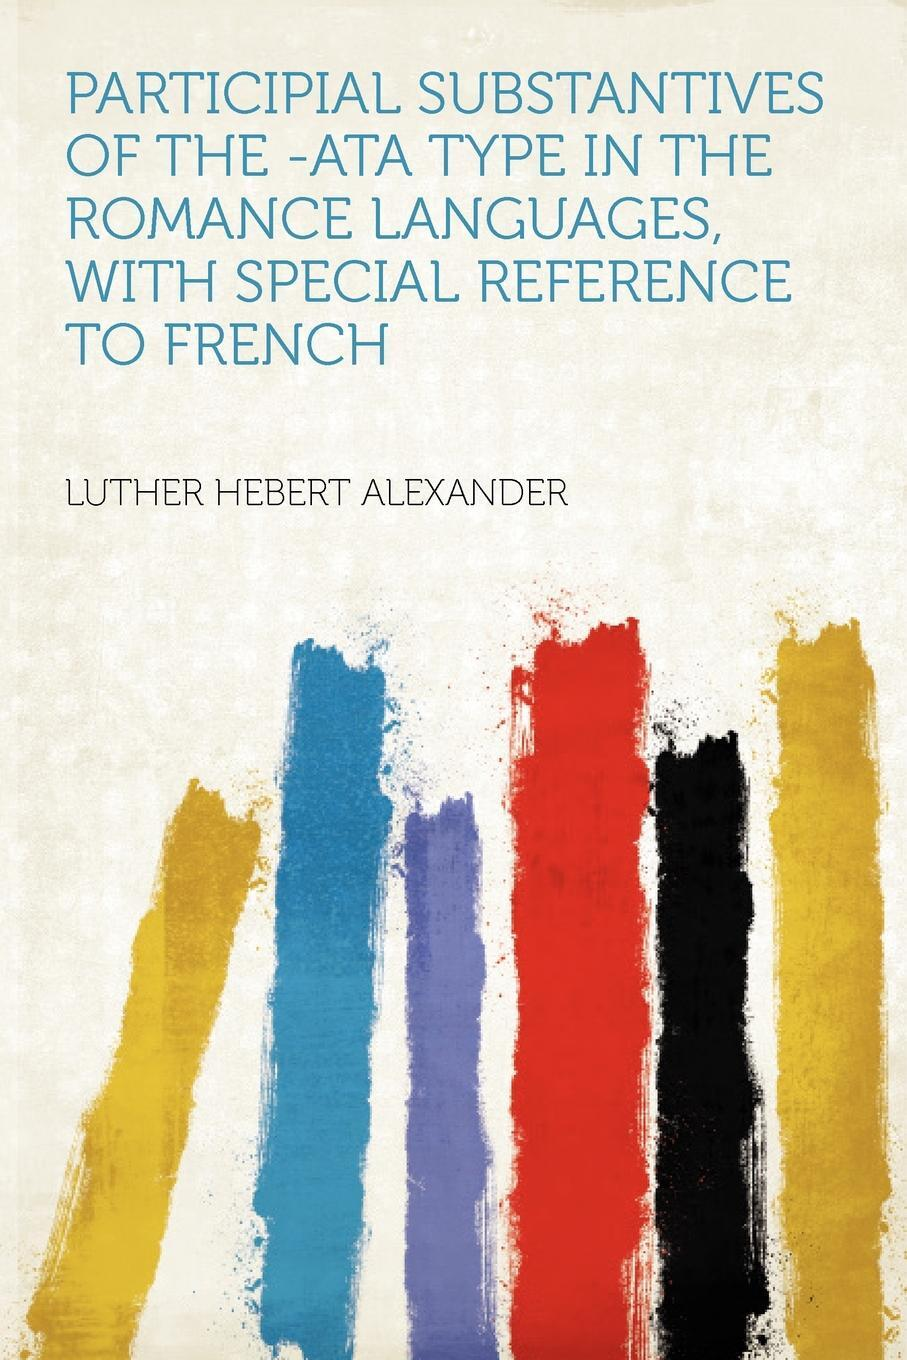 Participial Substantives of the -ata Type in the Romance Languages, With Special Reference to French.